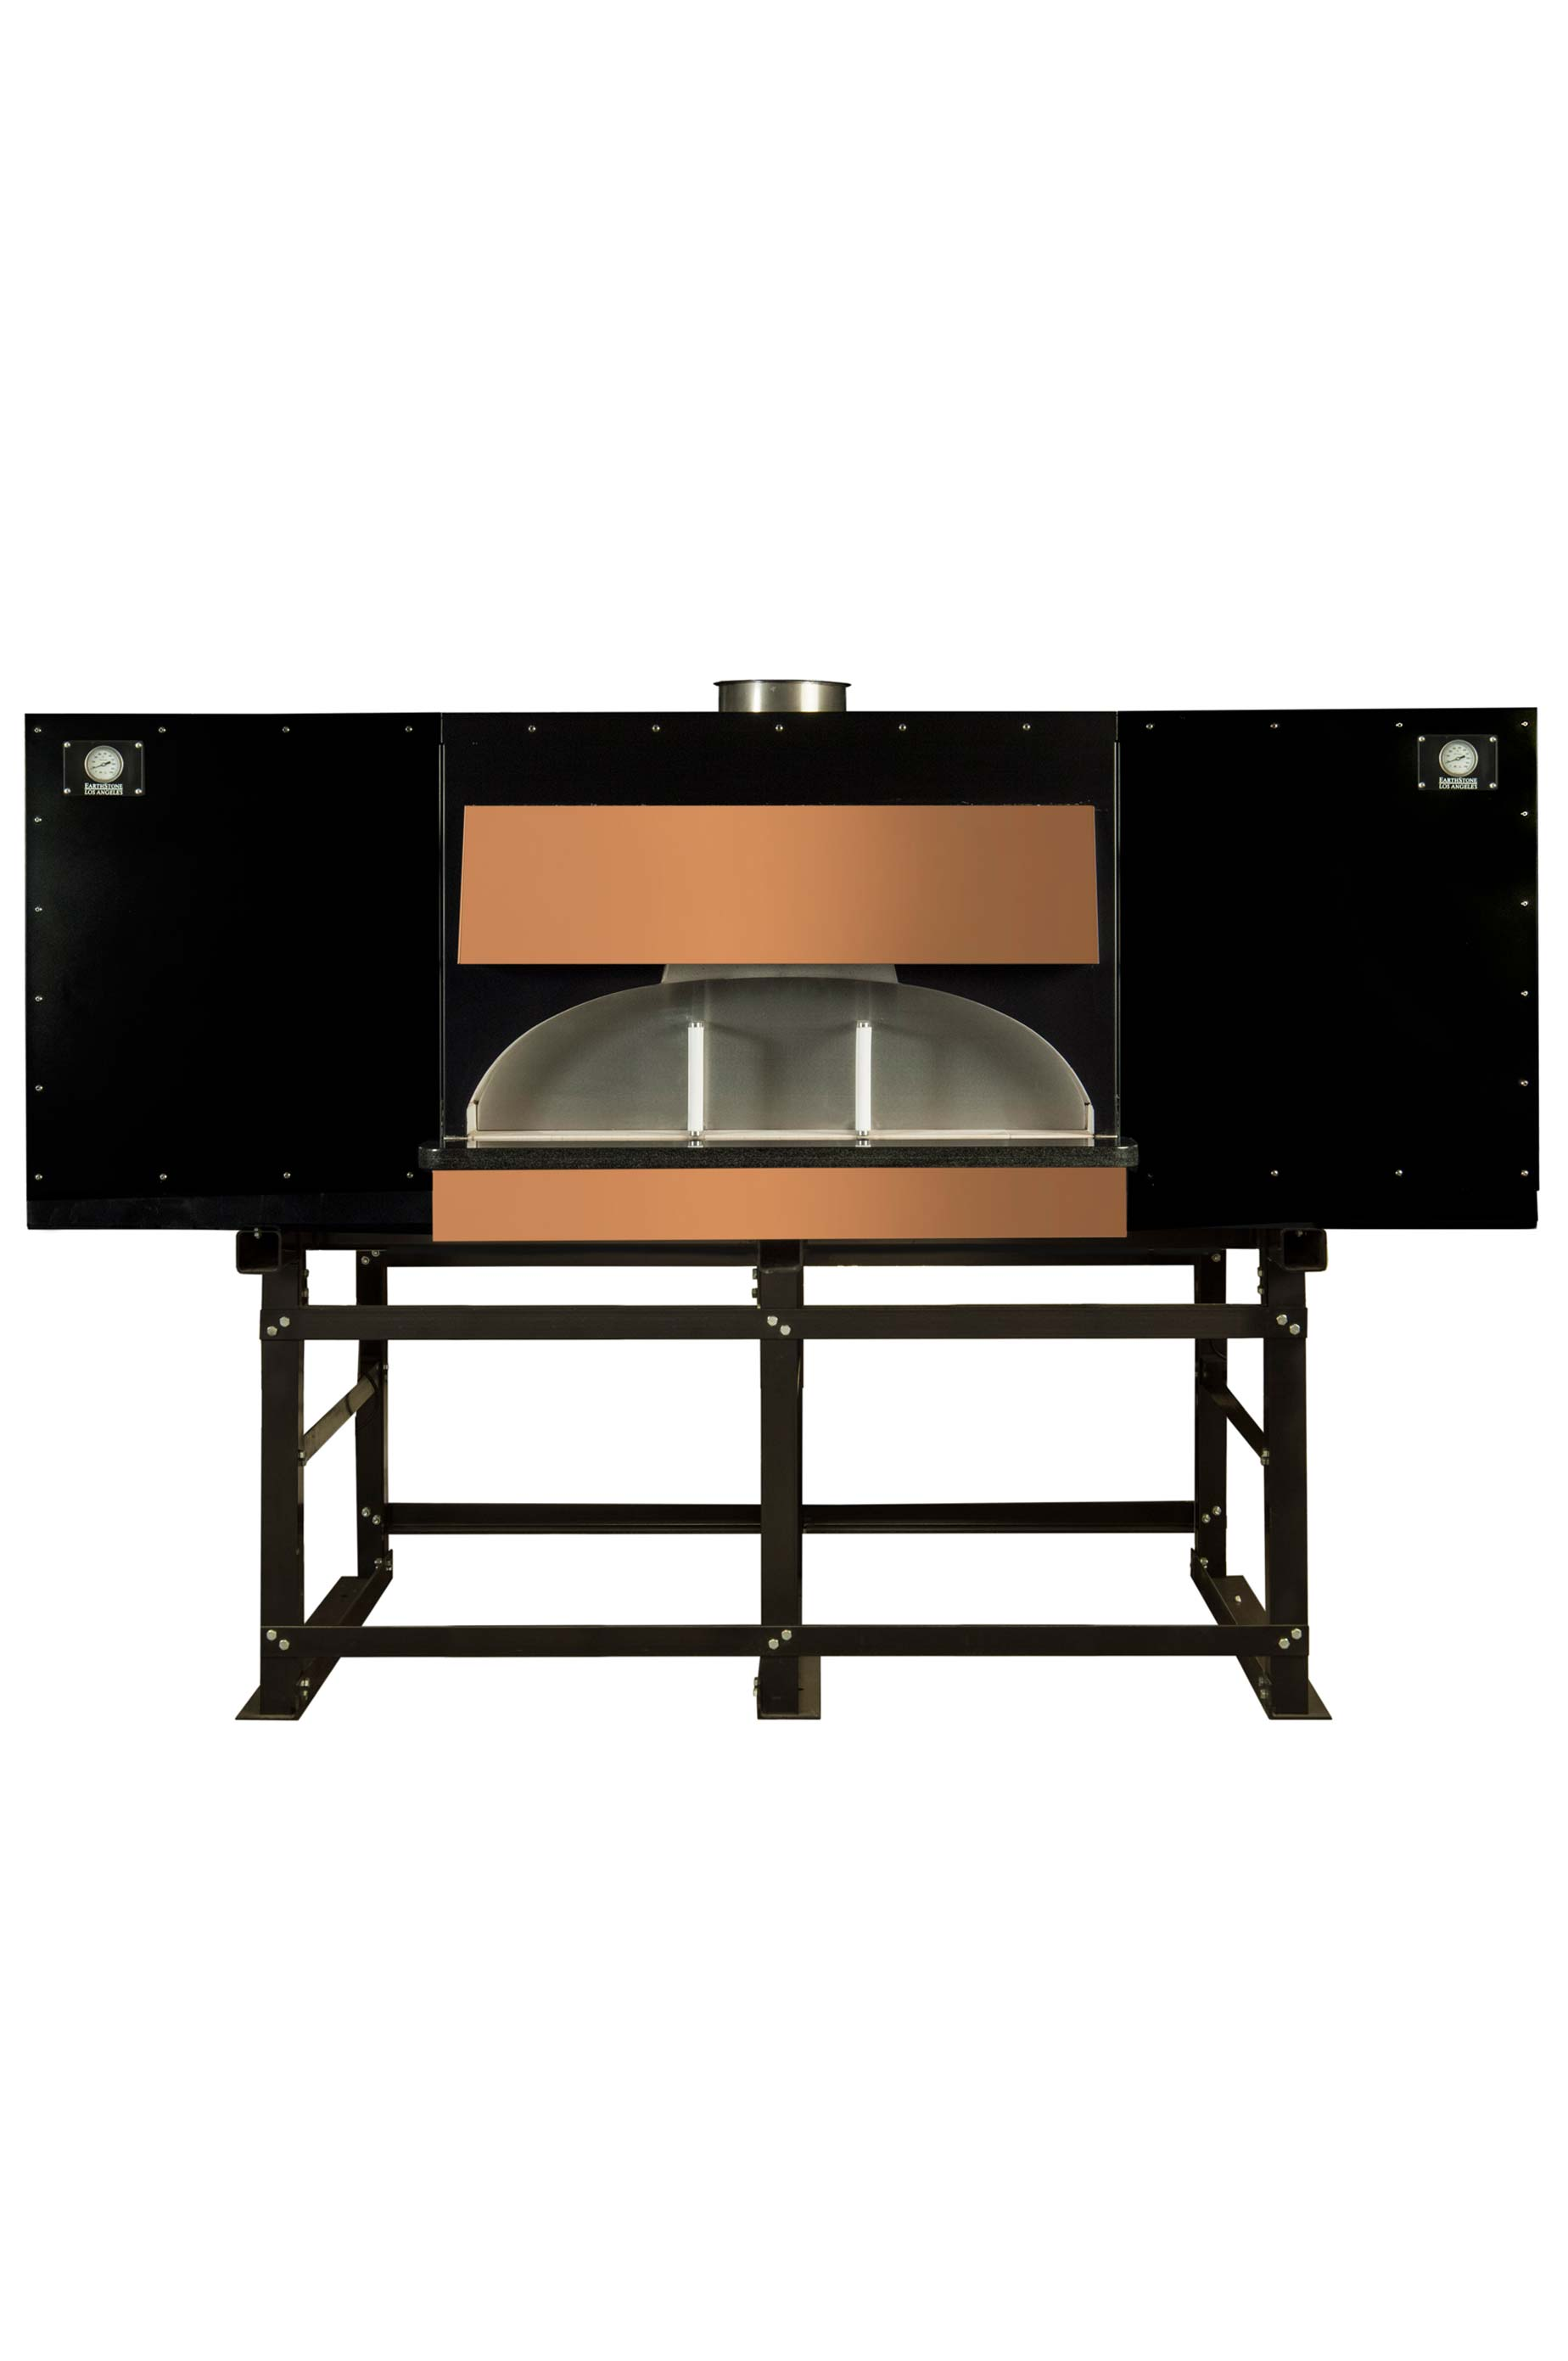 130 Due Pagw Earthstone Ovens Wood Amp Gas Fire Ovens